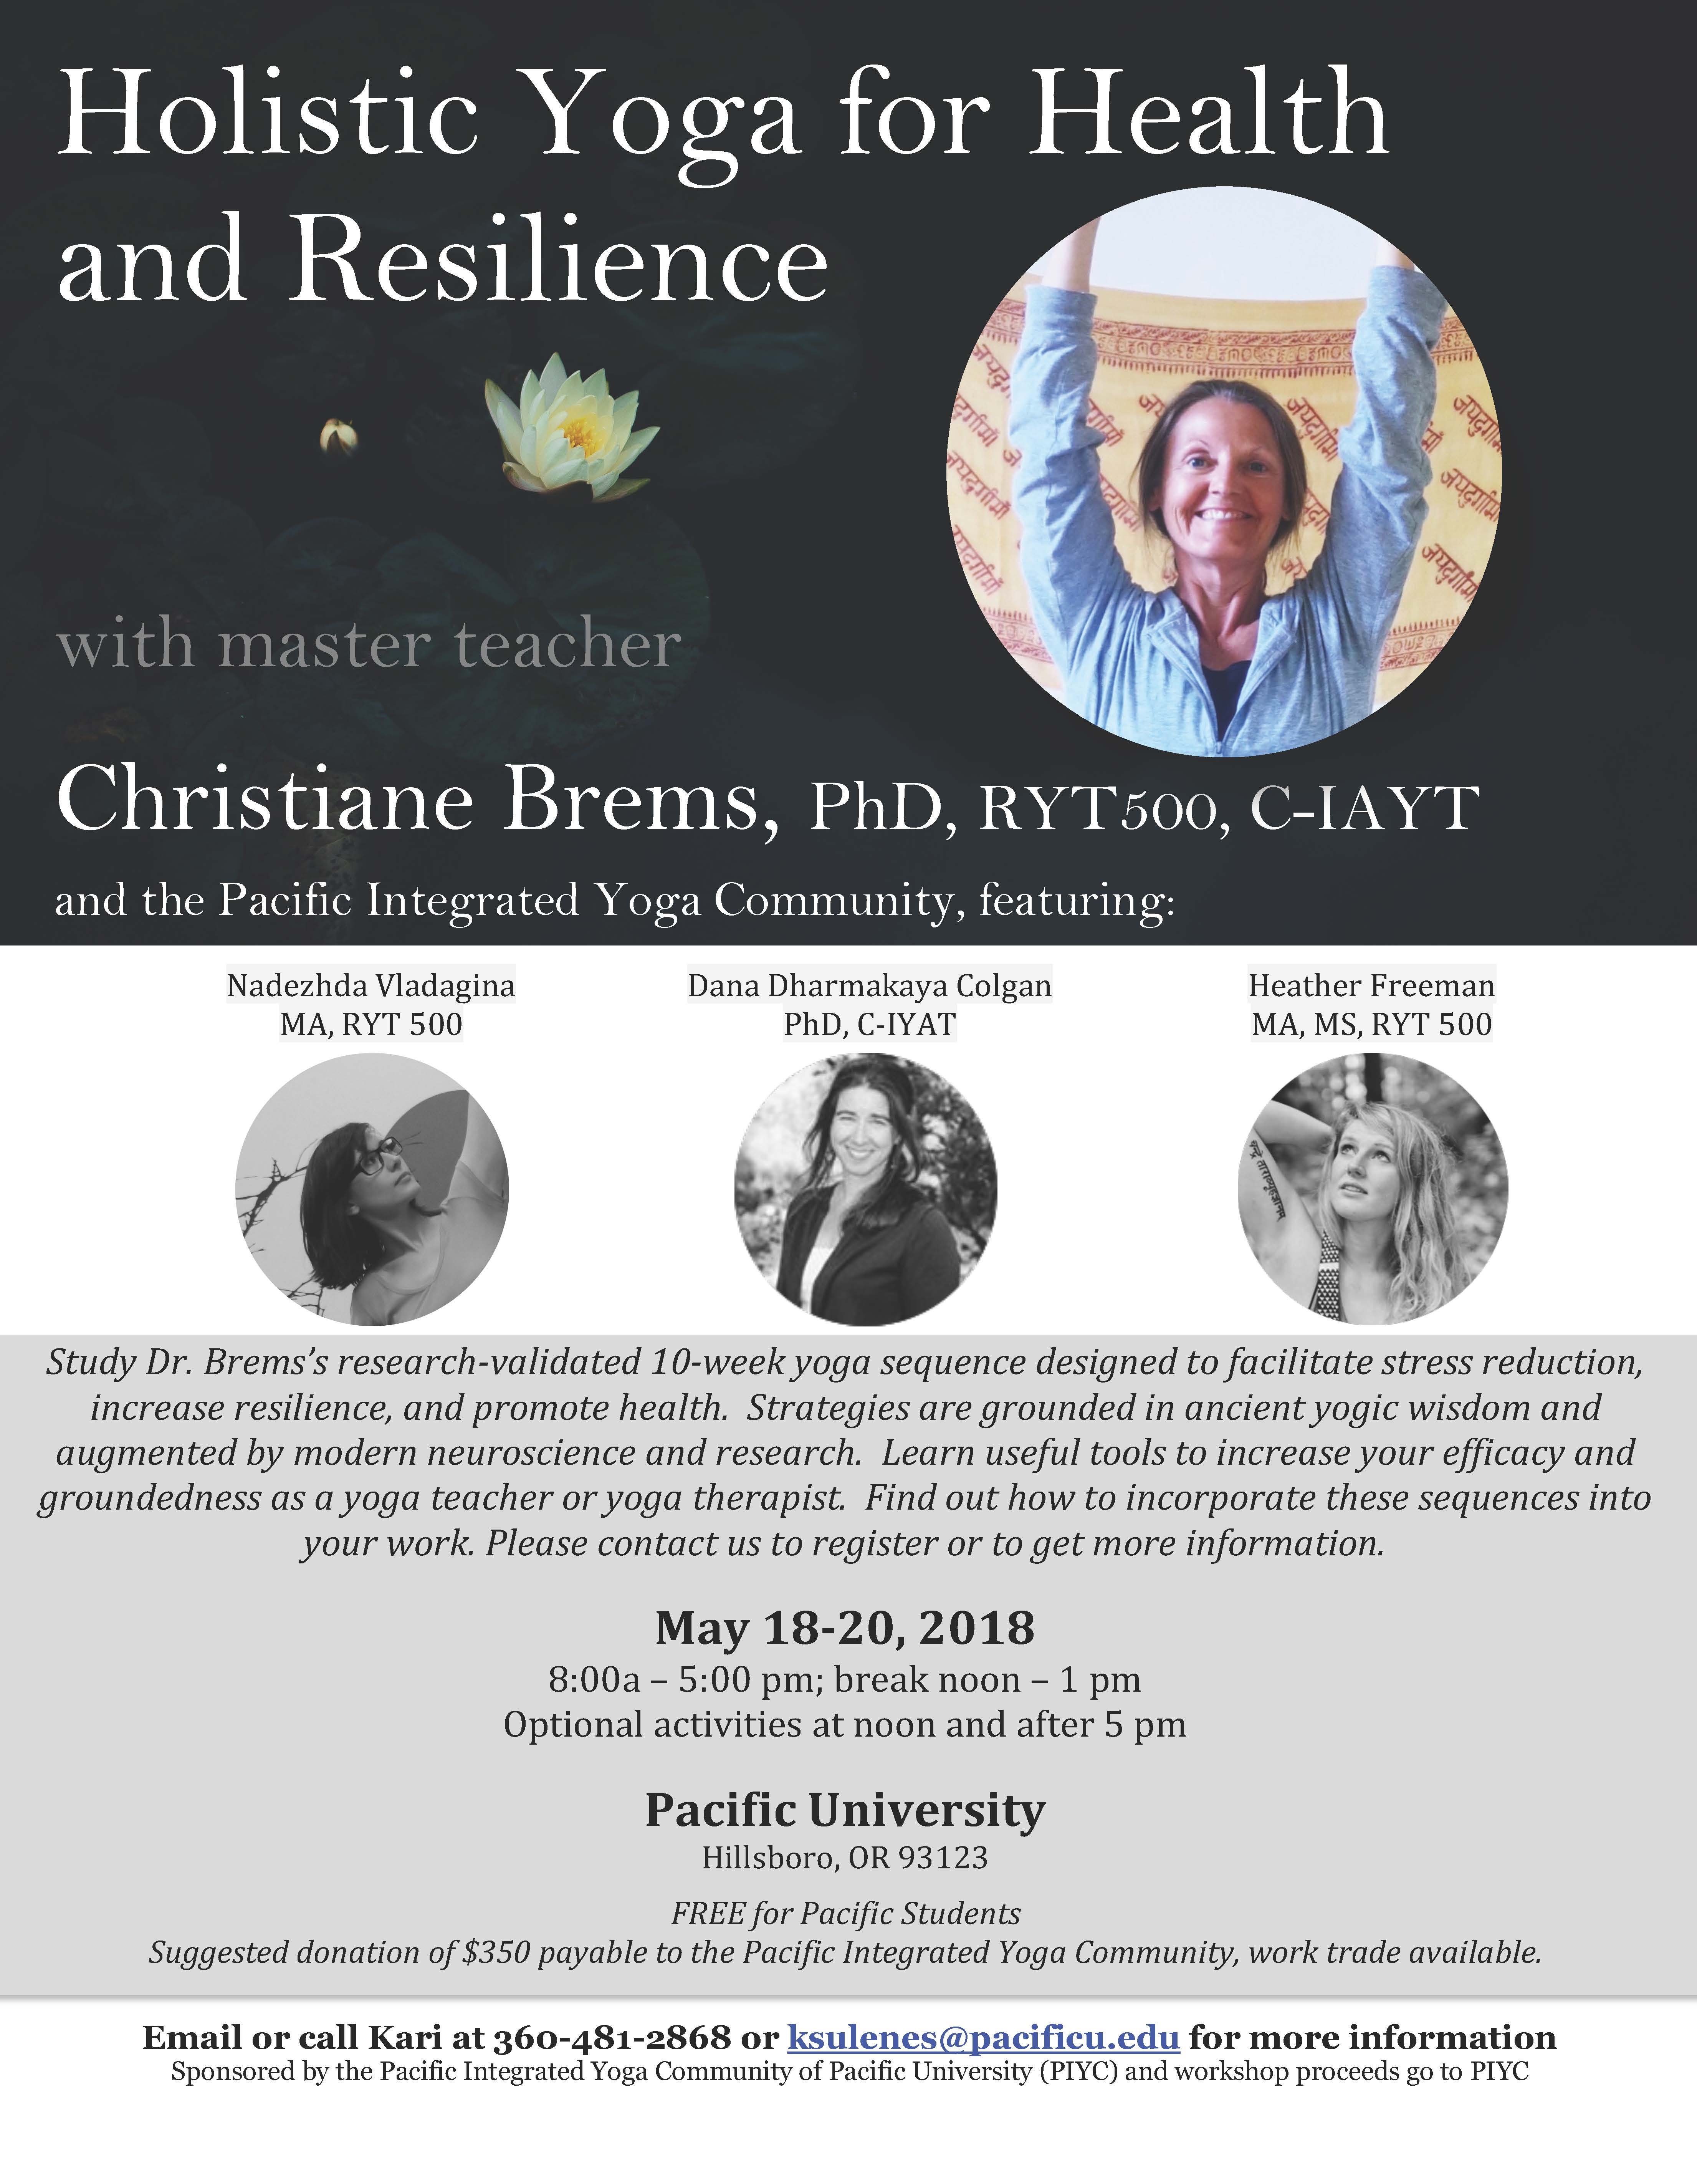 Attend The Holistic Yoga For Health And Resilience Workshop